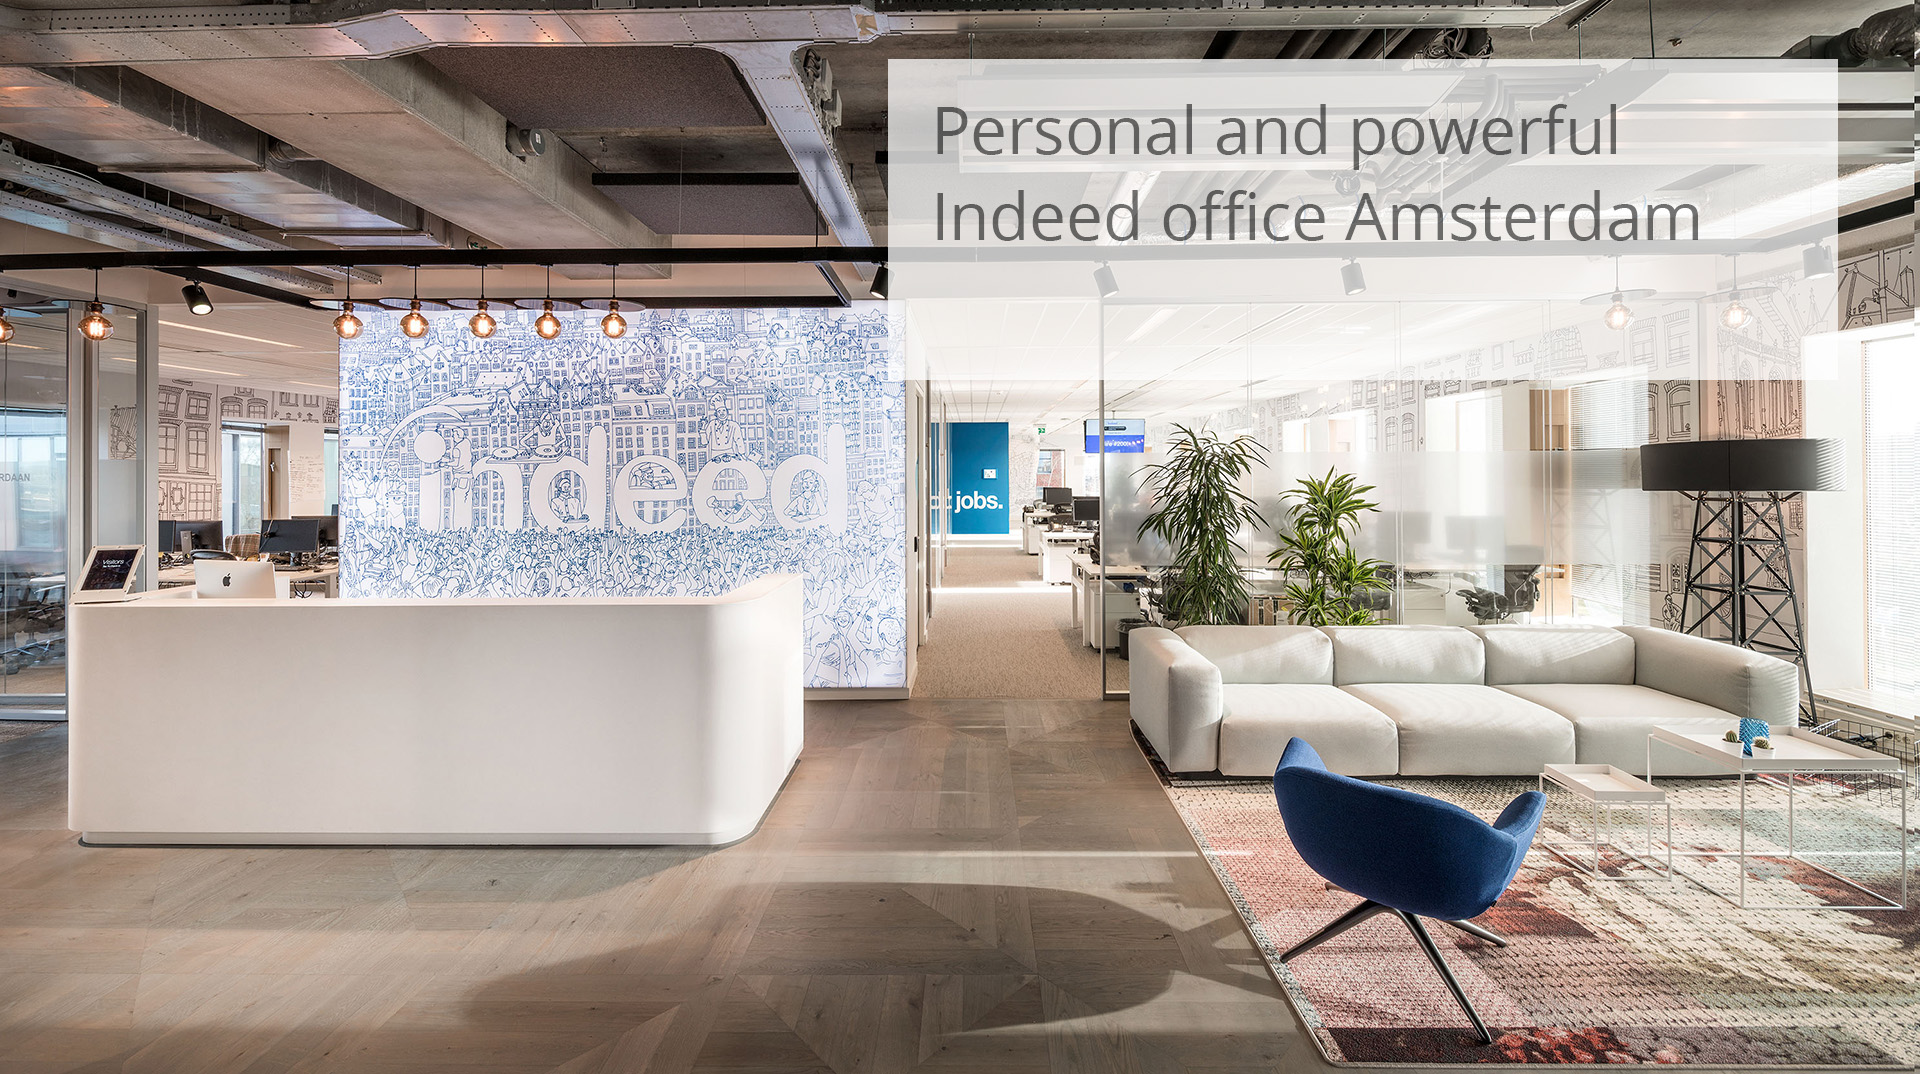 HofmanDujardin | Indeed office Amsterdam